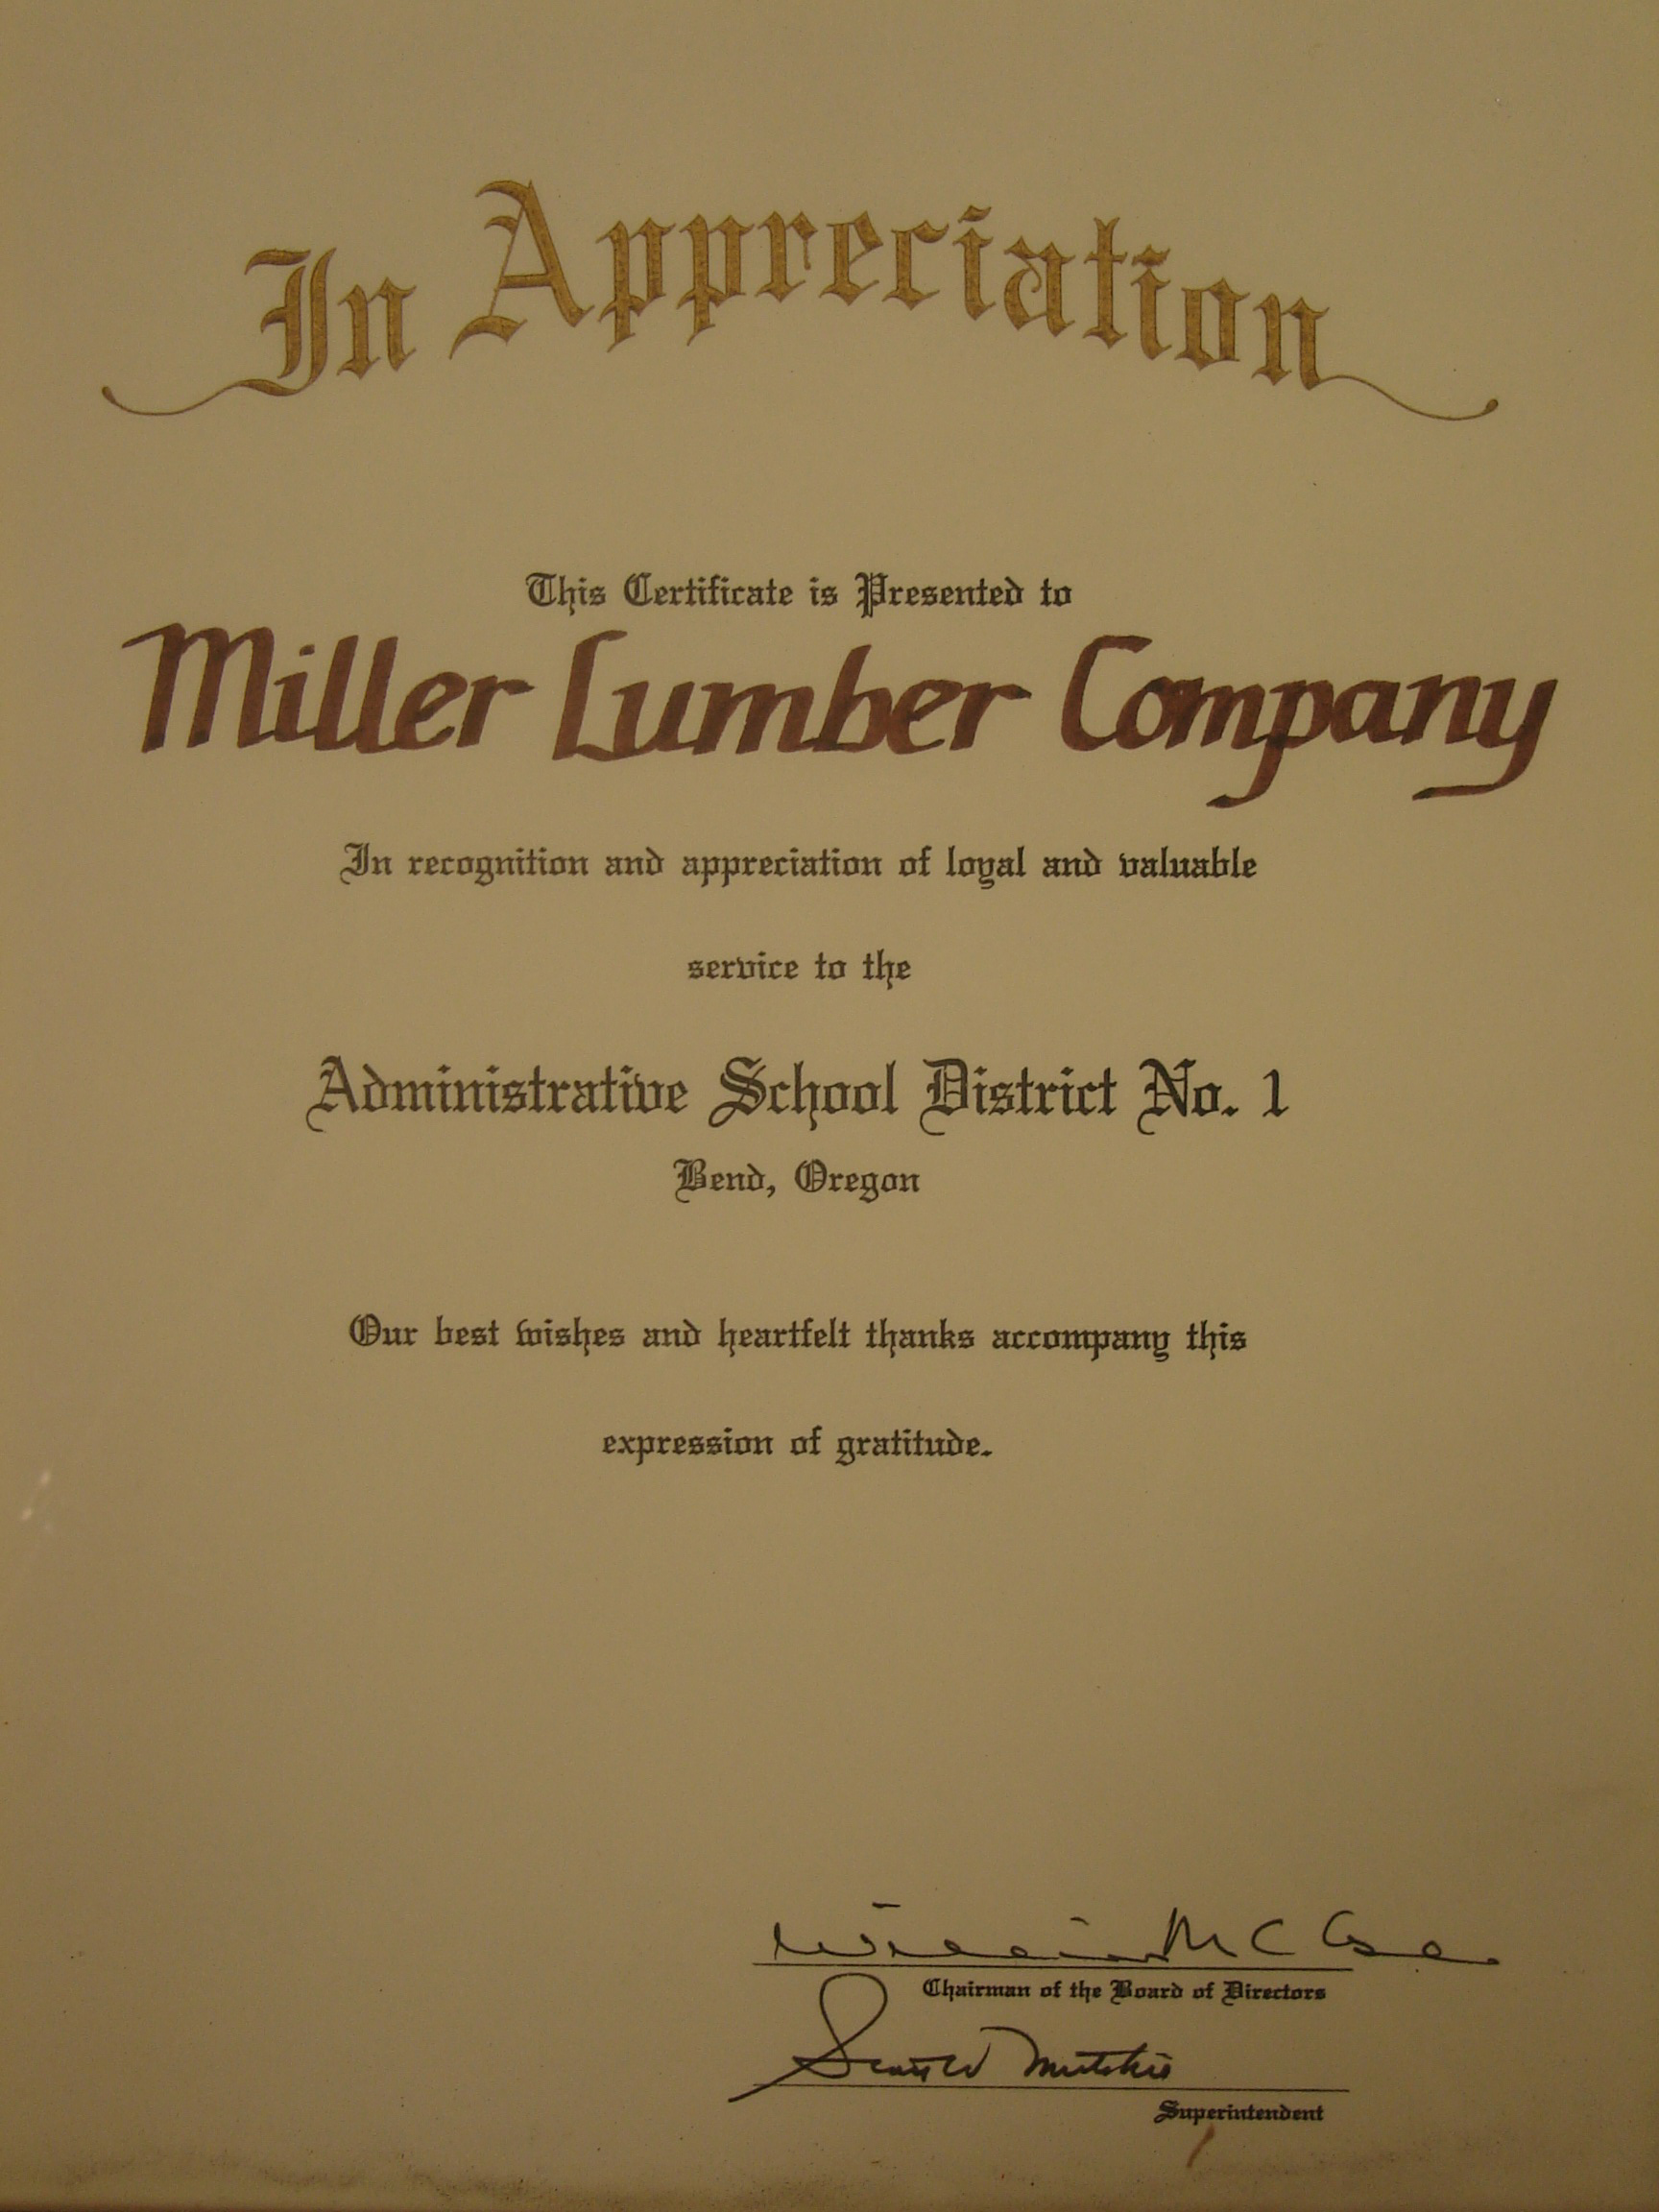 The Bend-LaPine School District greatly appreciates Miller Lumber's constant support.